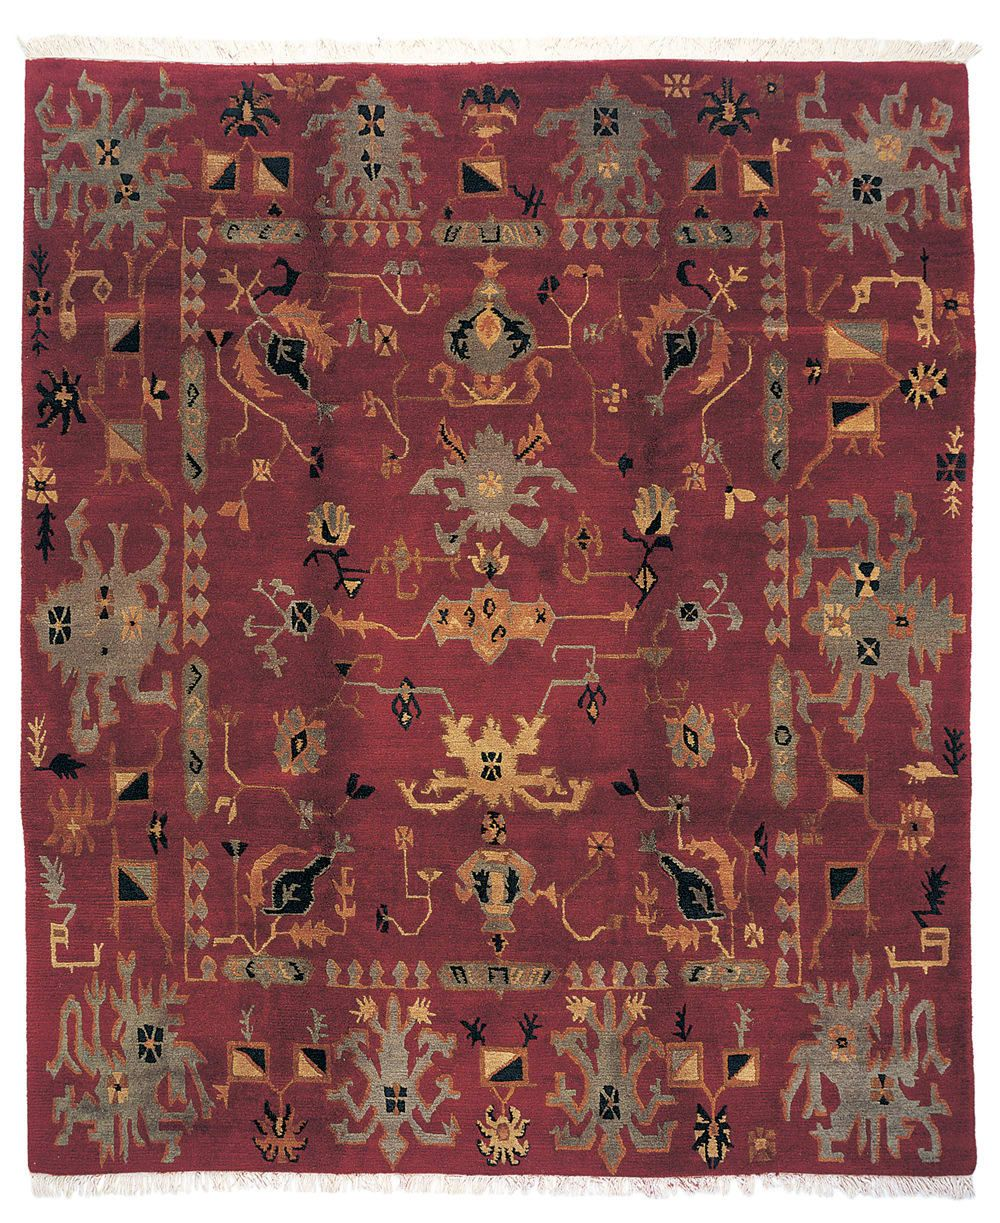 Tufenkian Created The Modern Tibetan Carpet Business In North America 25 Years Ago And Continues To Set Standards Others Aspire